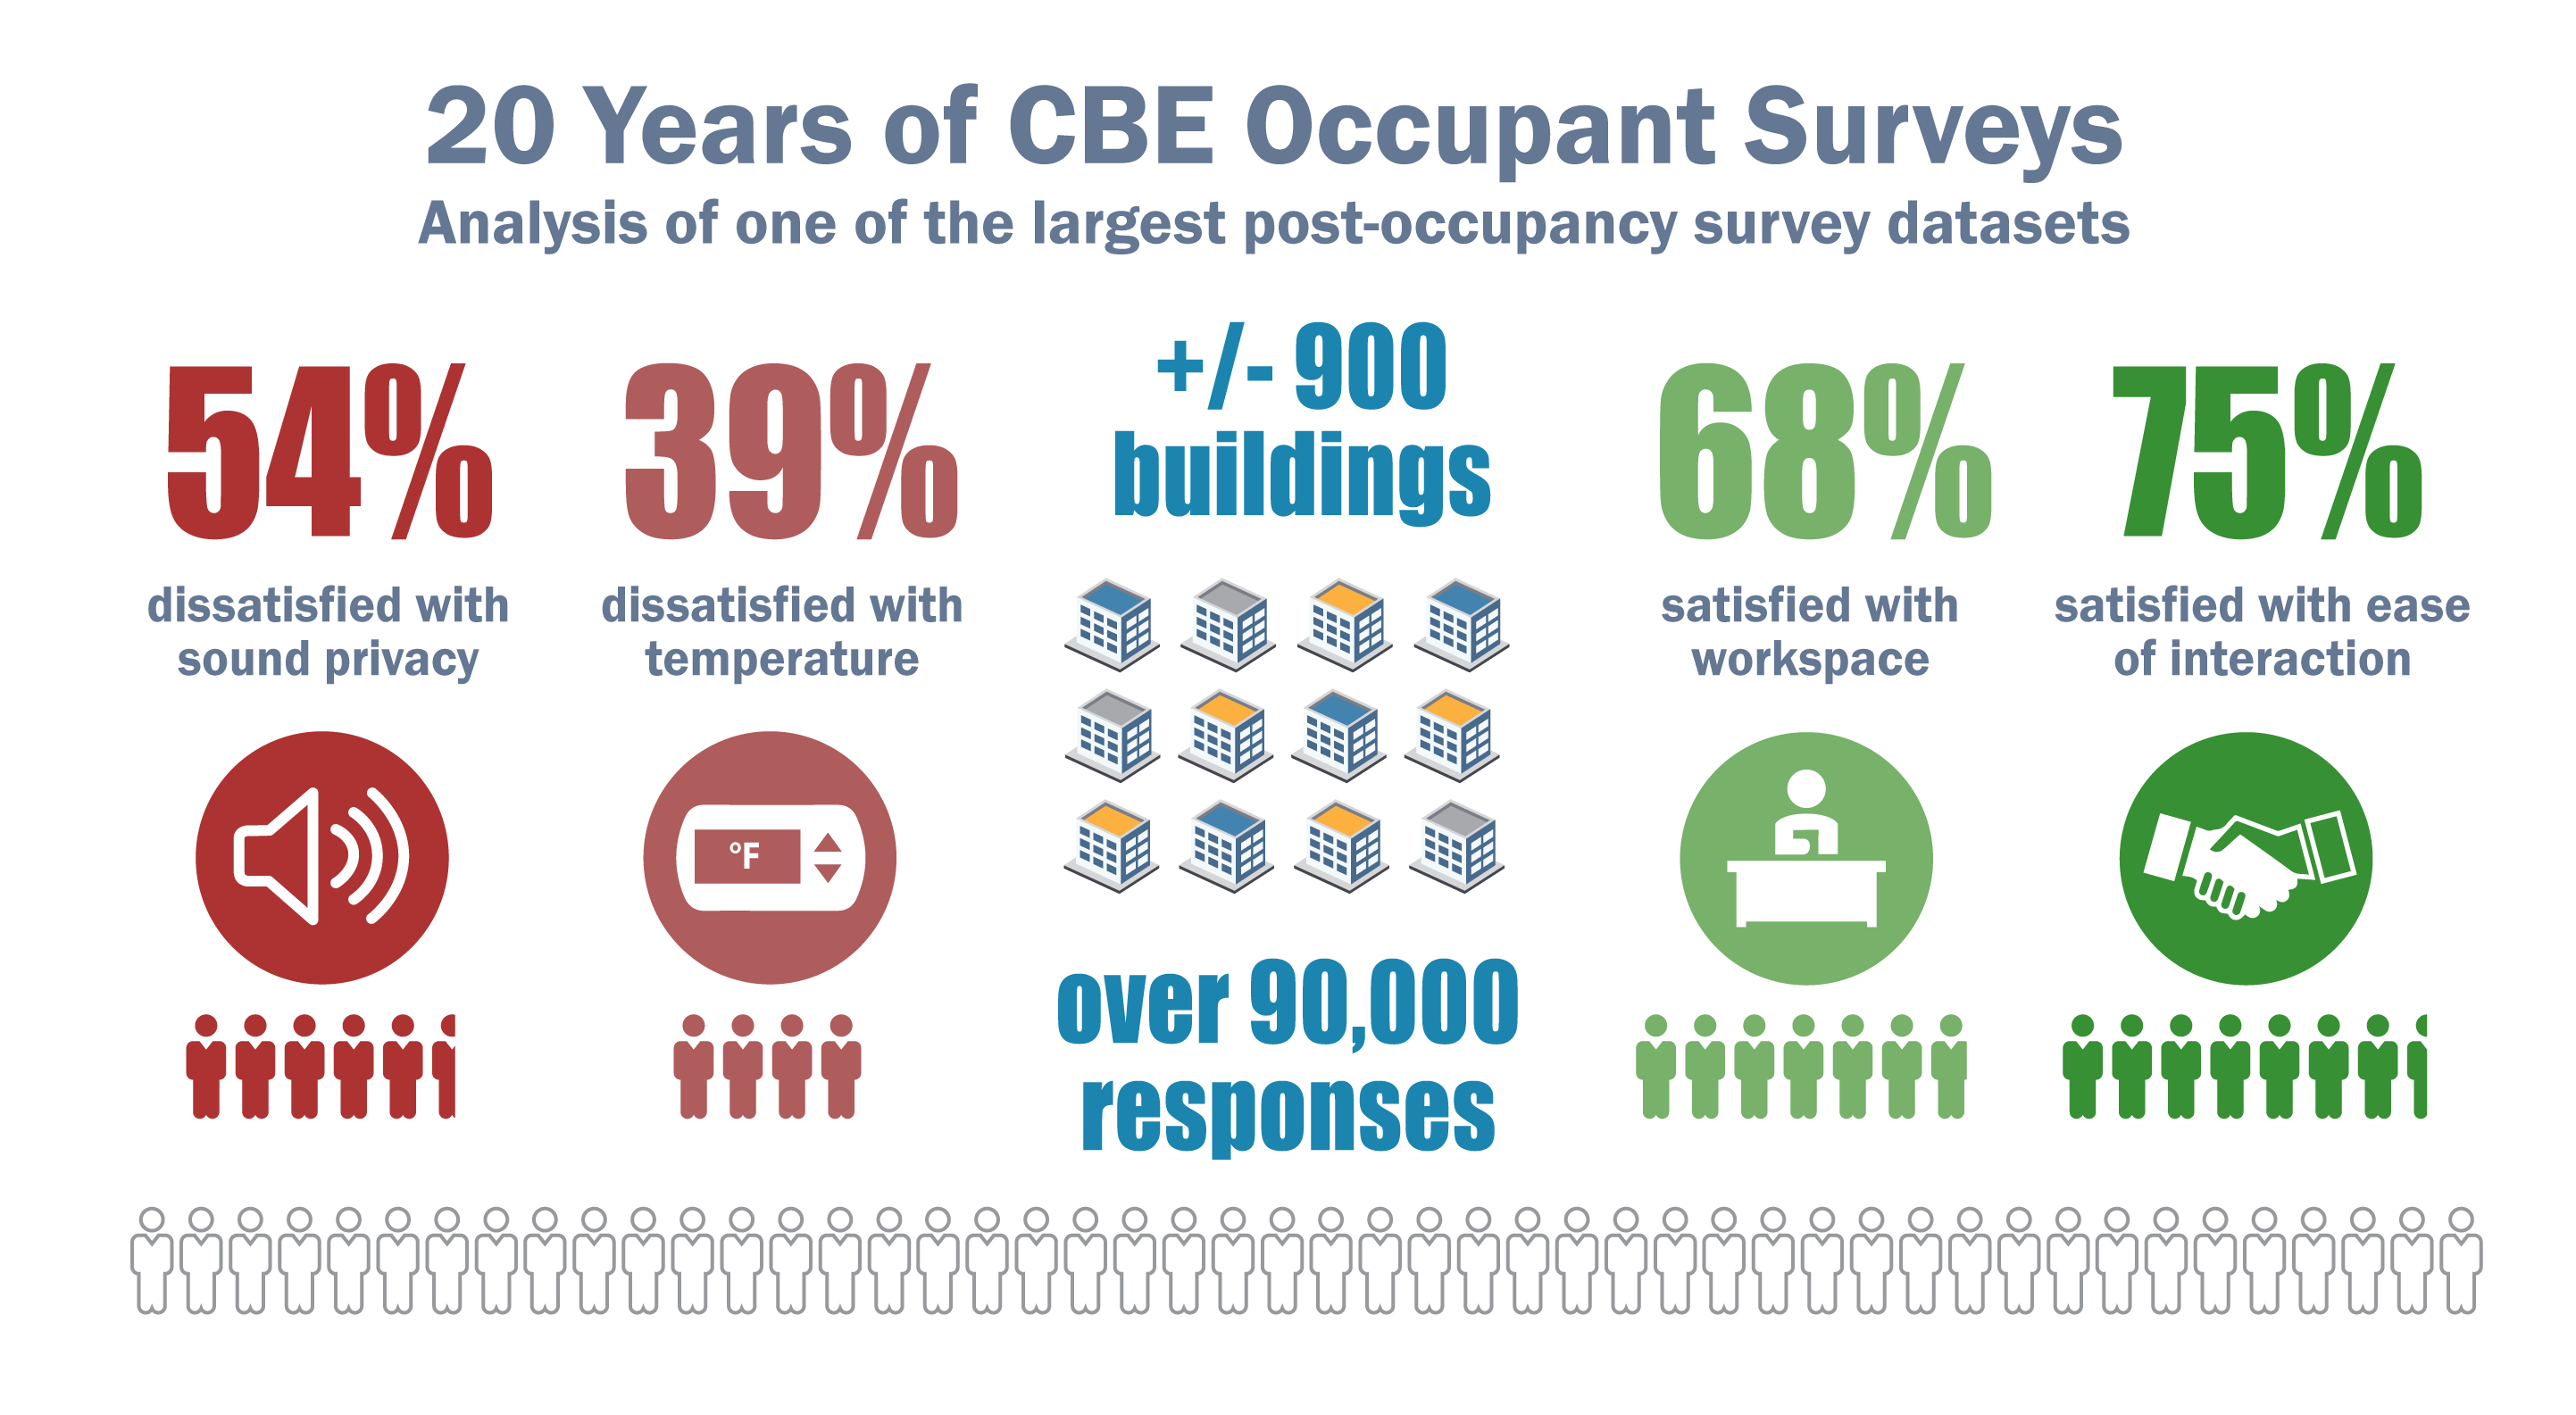 CBE survey 20 year review infographic